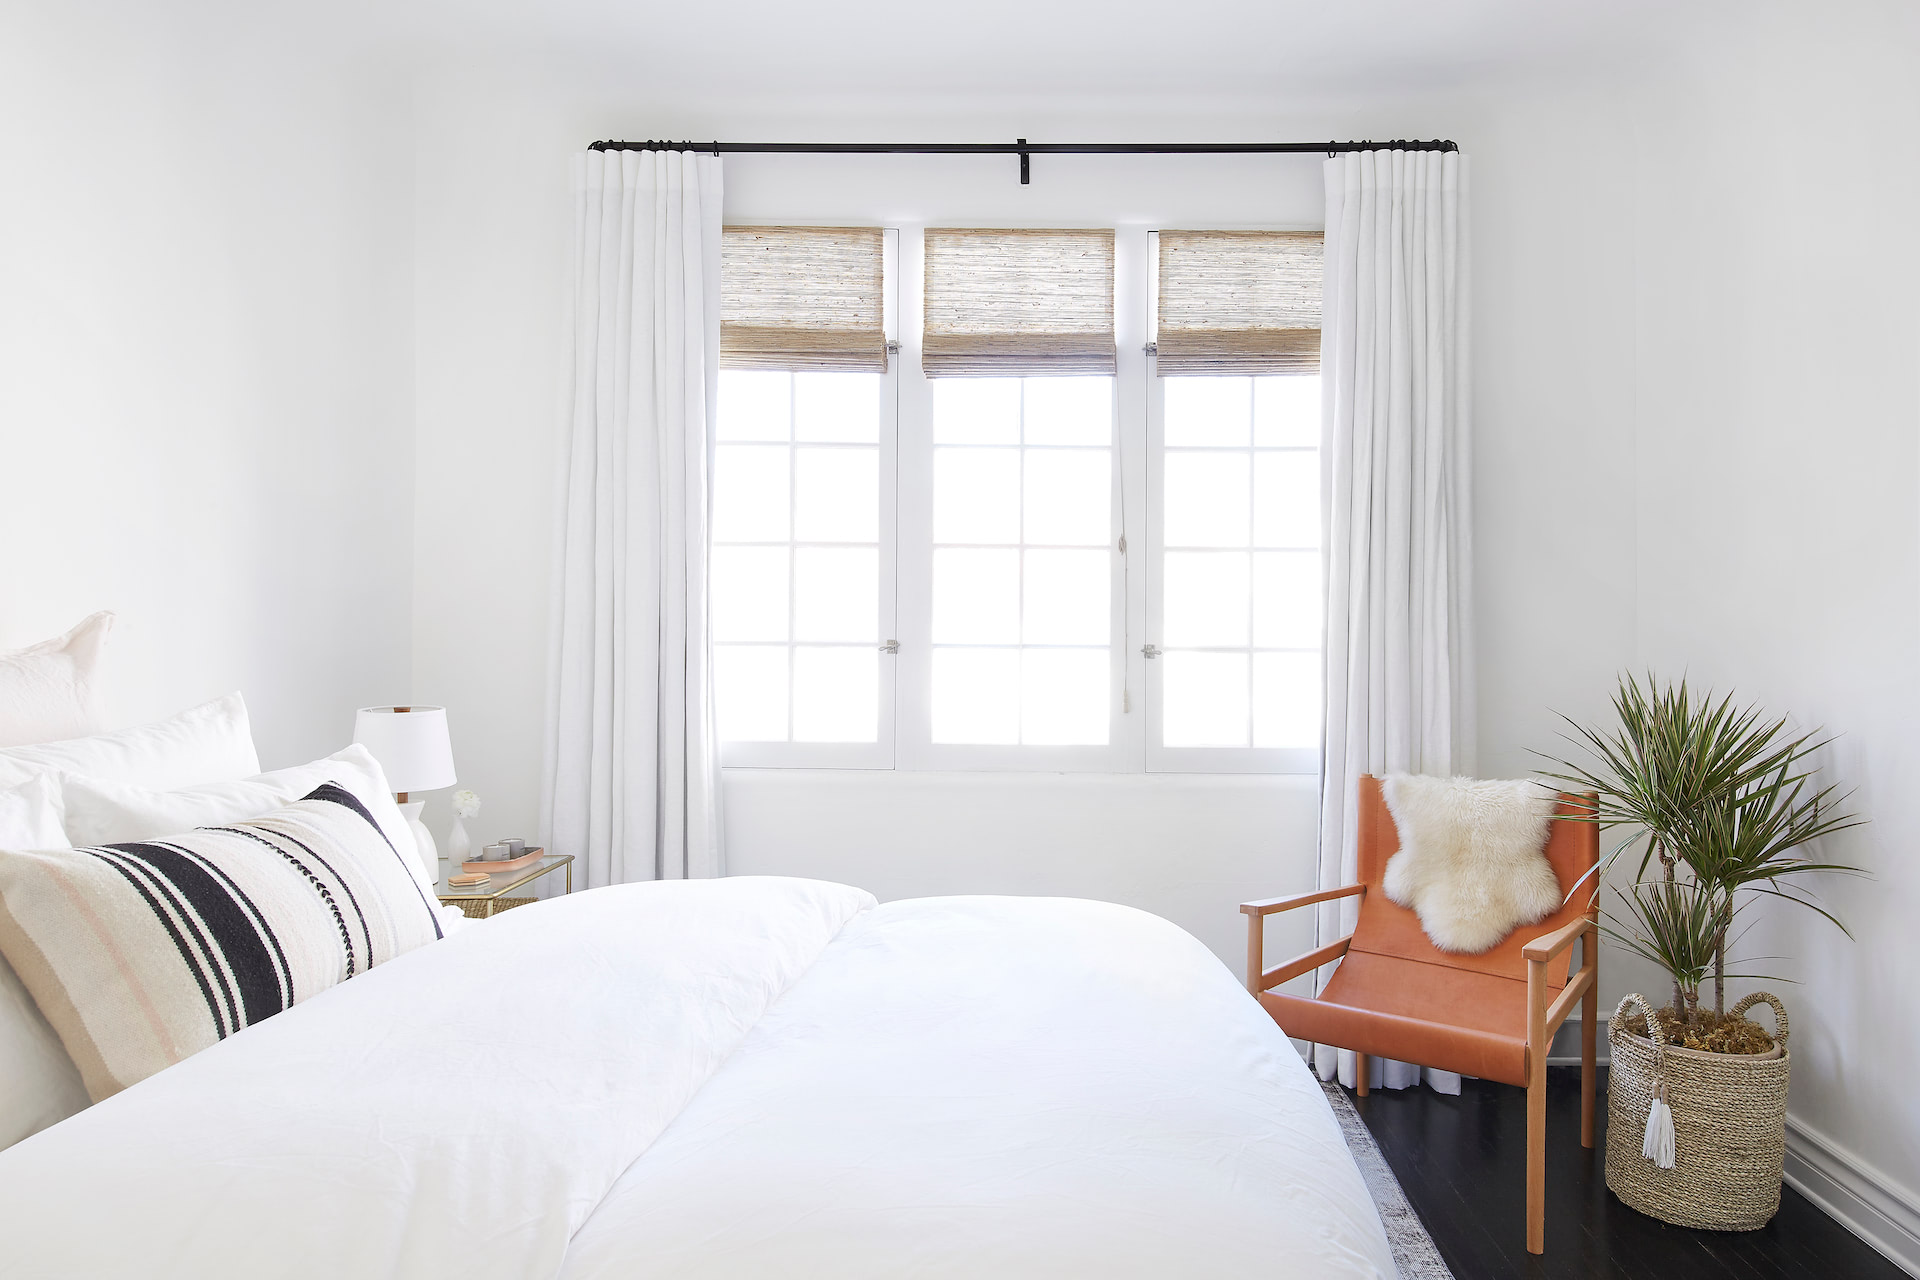 A bedroom with custom window treatments covering the windows | Everhem